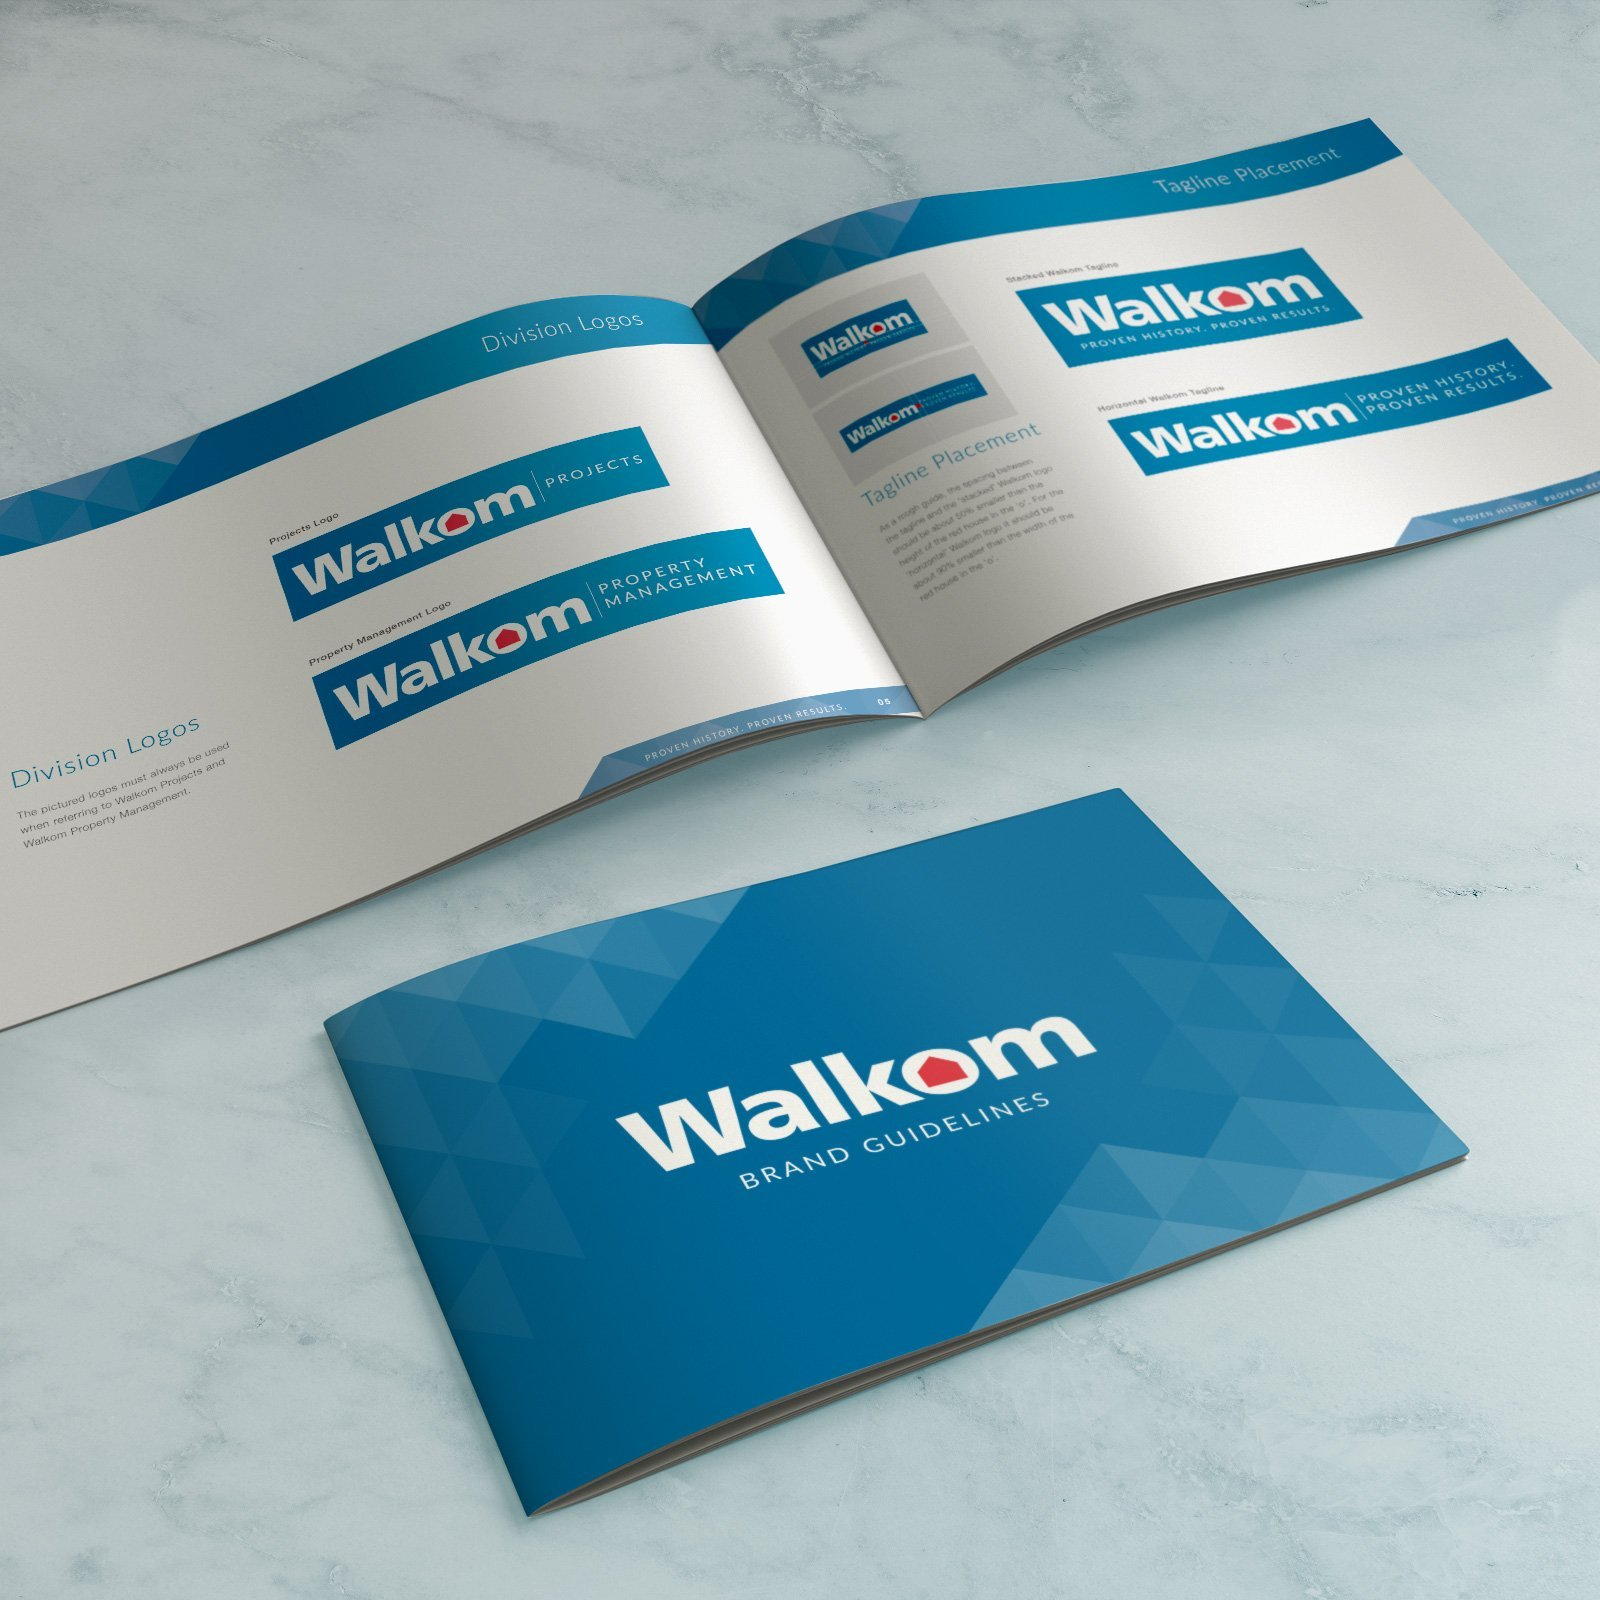 Walkom Real Estate Style Guide